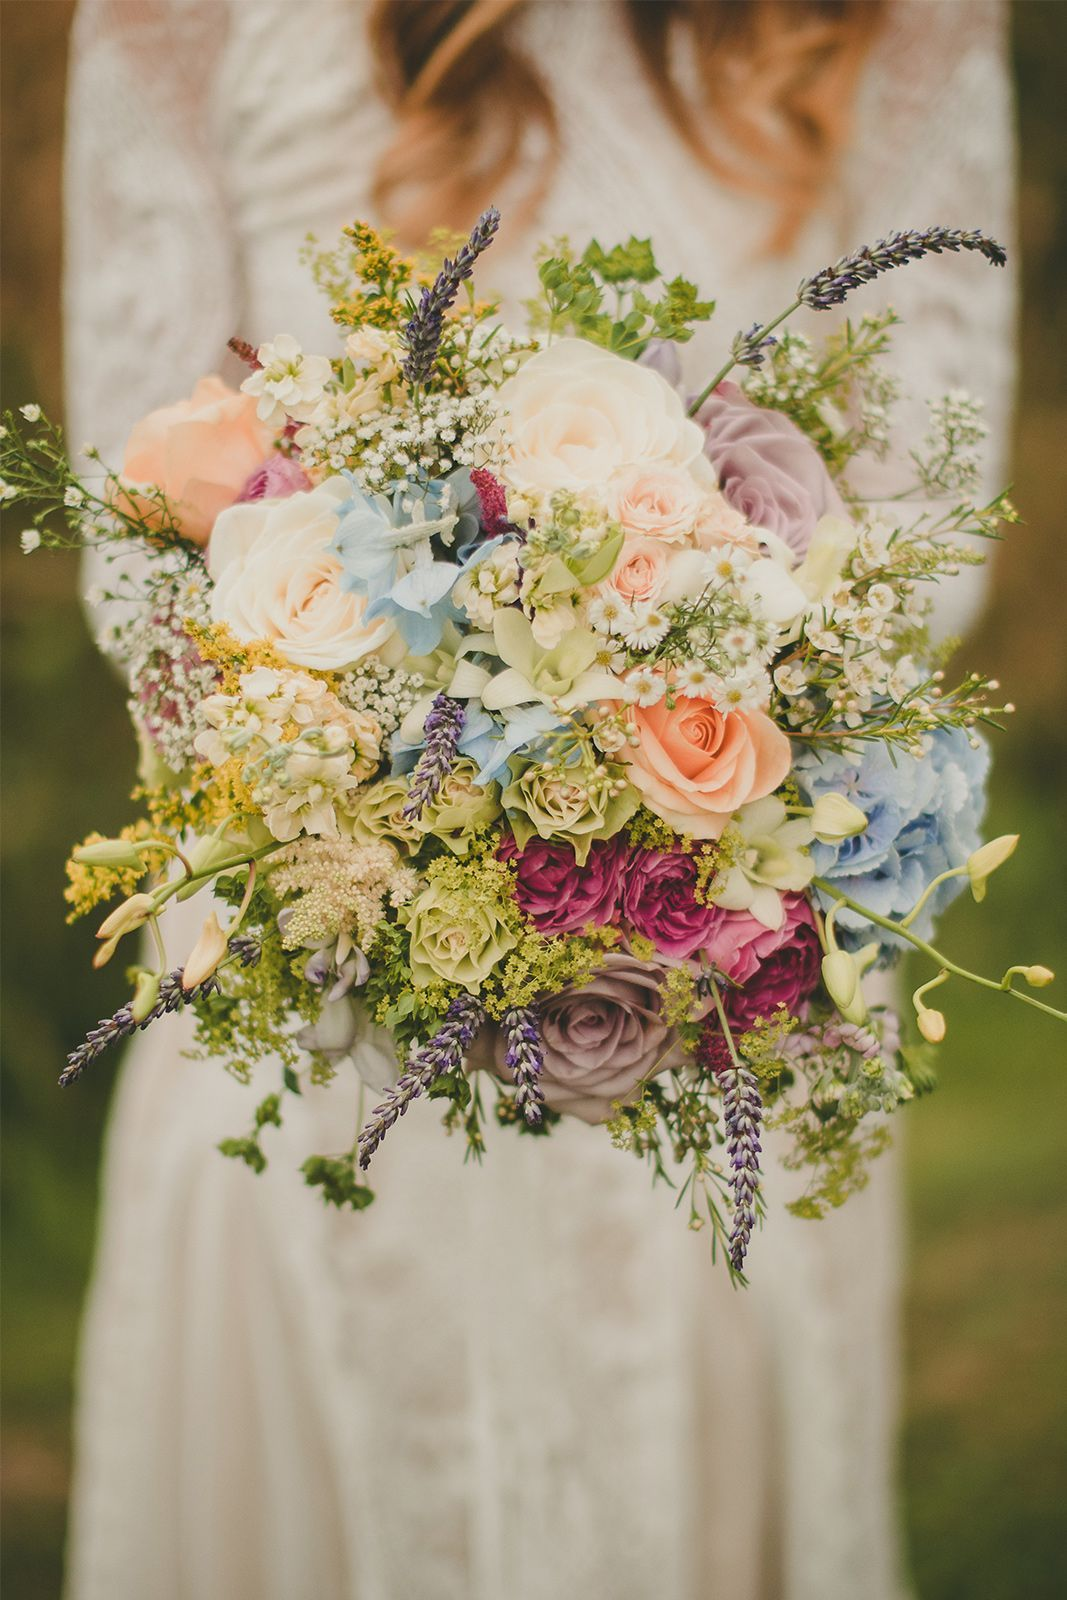 Incredible Country Garden Bouquet There Are Also Some Things To Consider With The Garden Pat In 2020 Wedding Flowers Country Wedding Flowers Country Garden Weddings